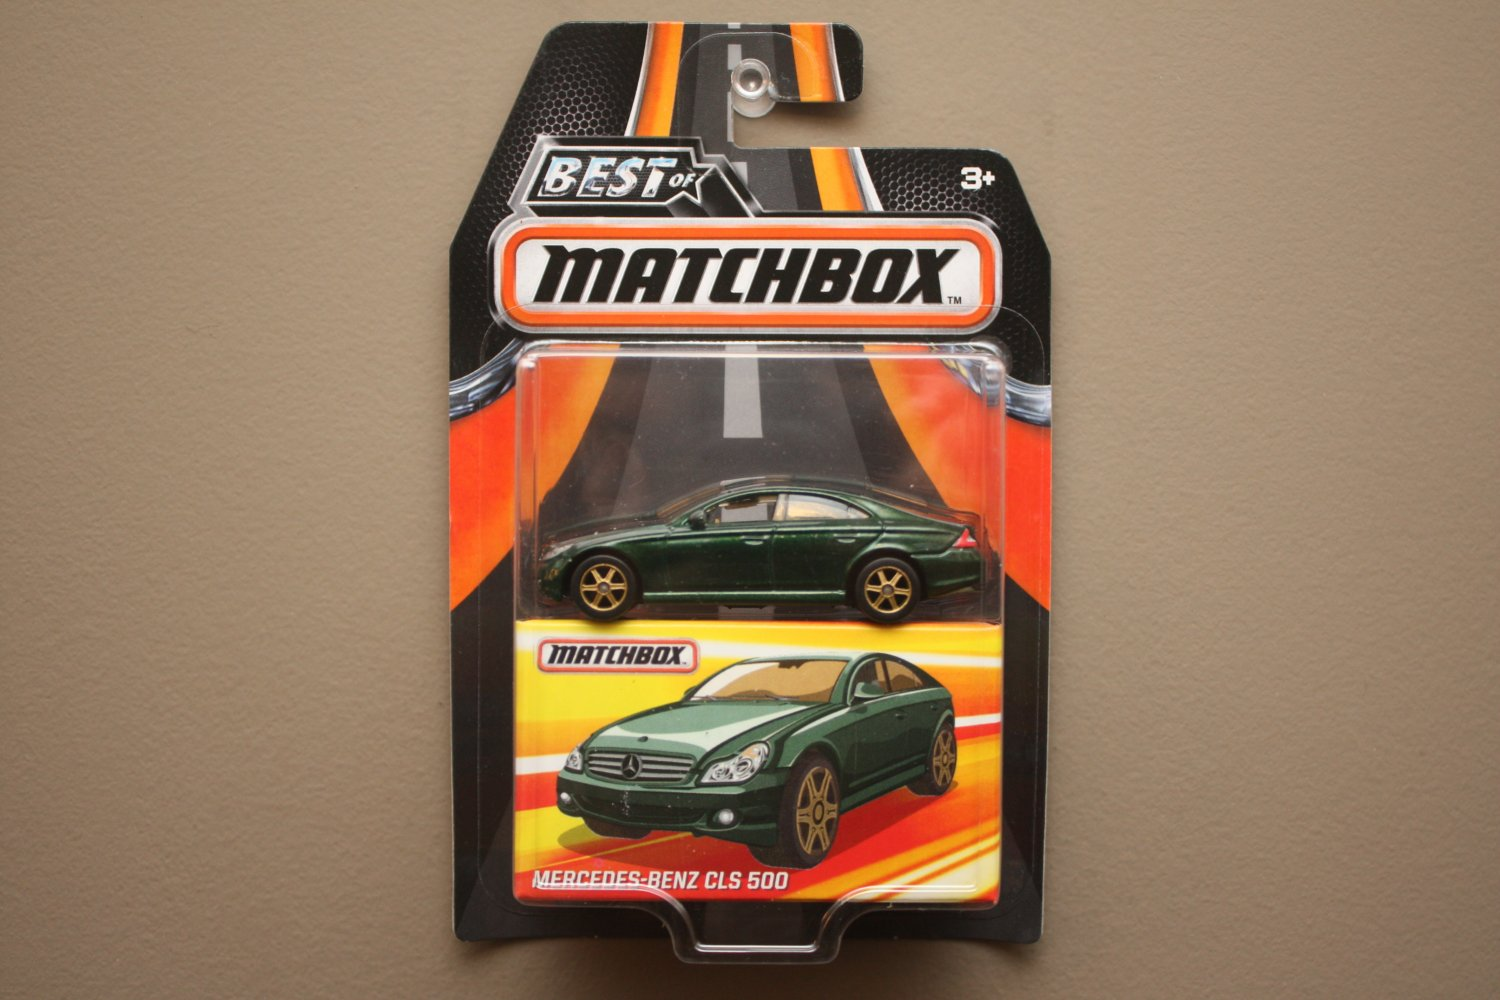 Matchbox 2017 Best Of Series Mercedes Benz CLS 500